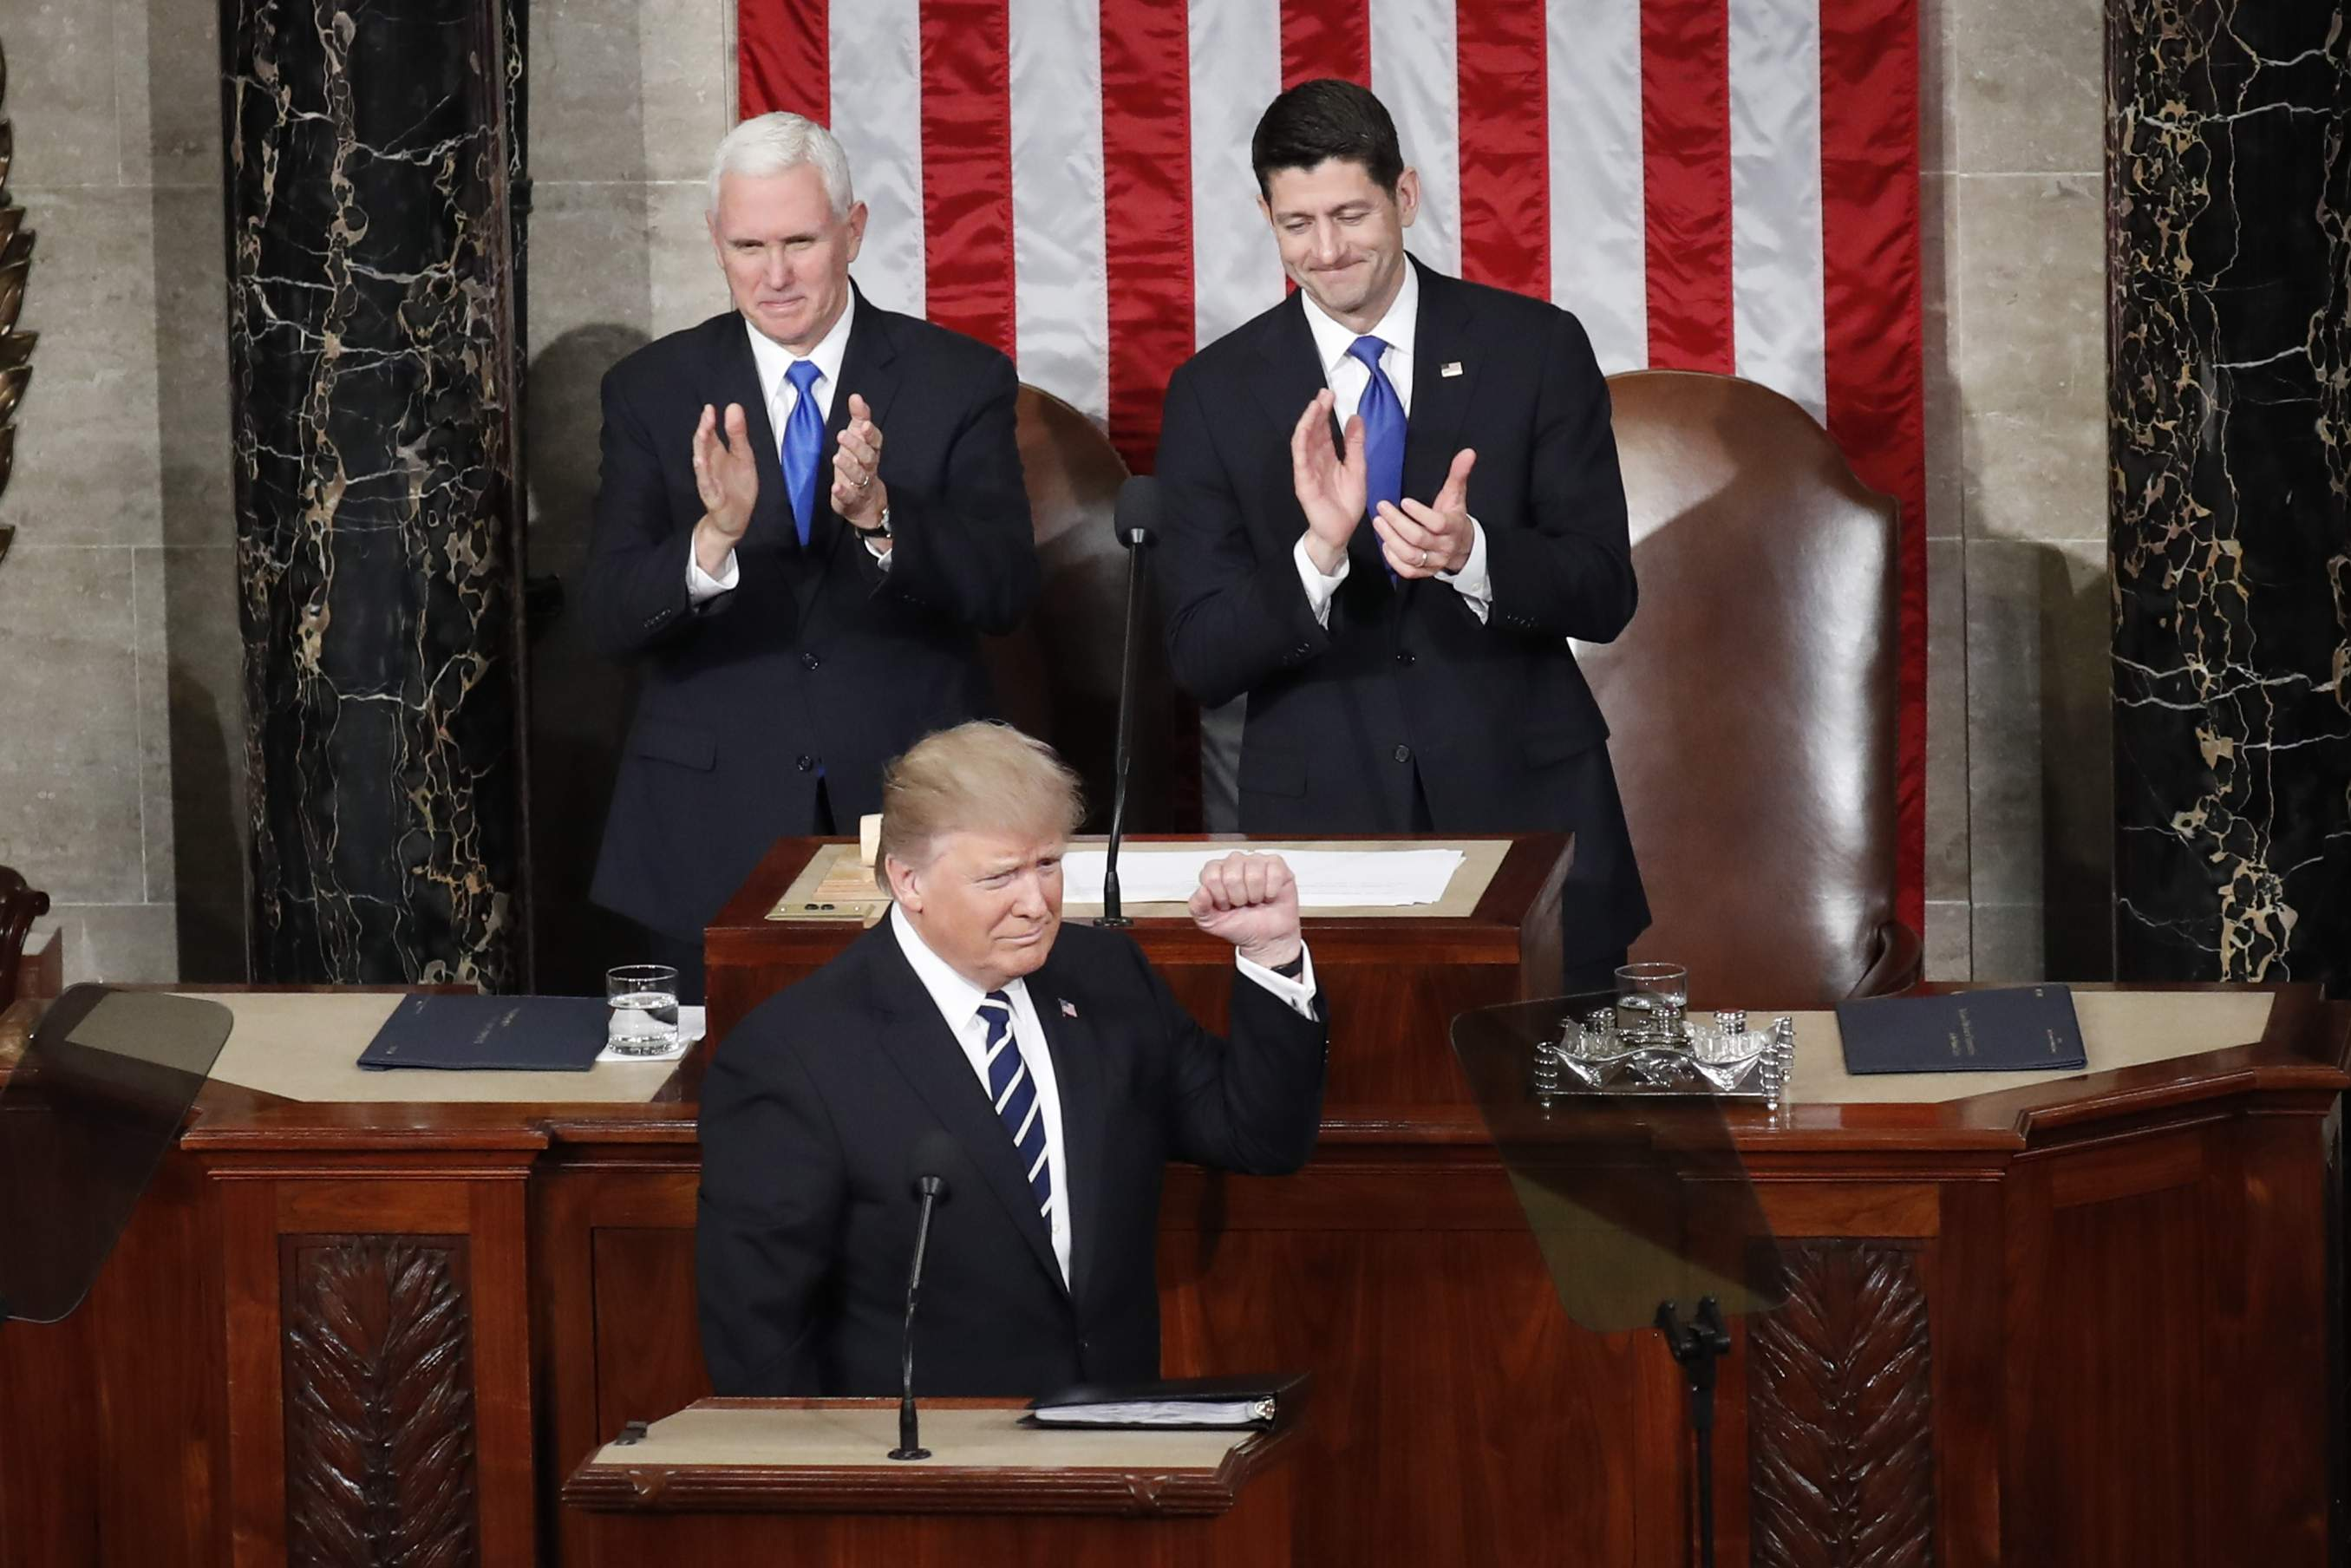 DAY 40 - In this Feb. 28, 2017, file photo, President Donald Trump, flanked by Vice President Mike Pence and House Speaker Paul Ryan of Wis., gestures on Capitol Hill in Washington, before his address to a joint session of Congress. (AP Photo/Pablo Martinez Monsivais, file)